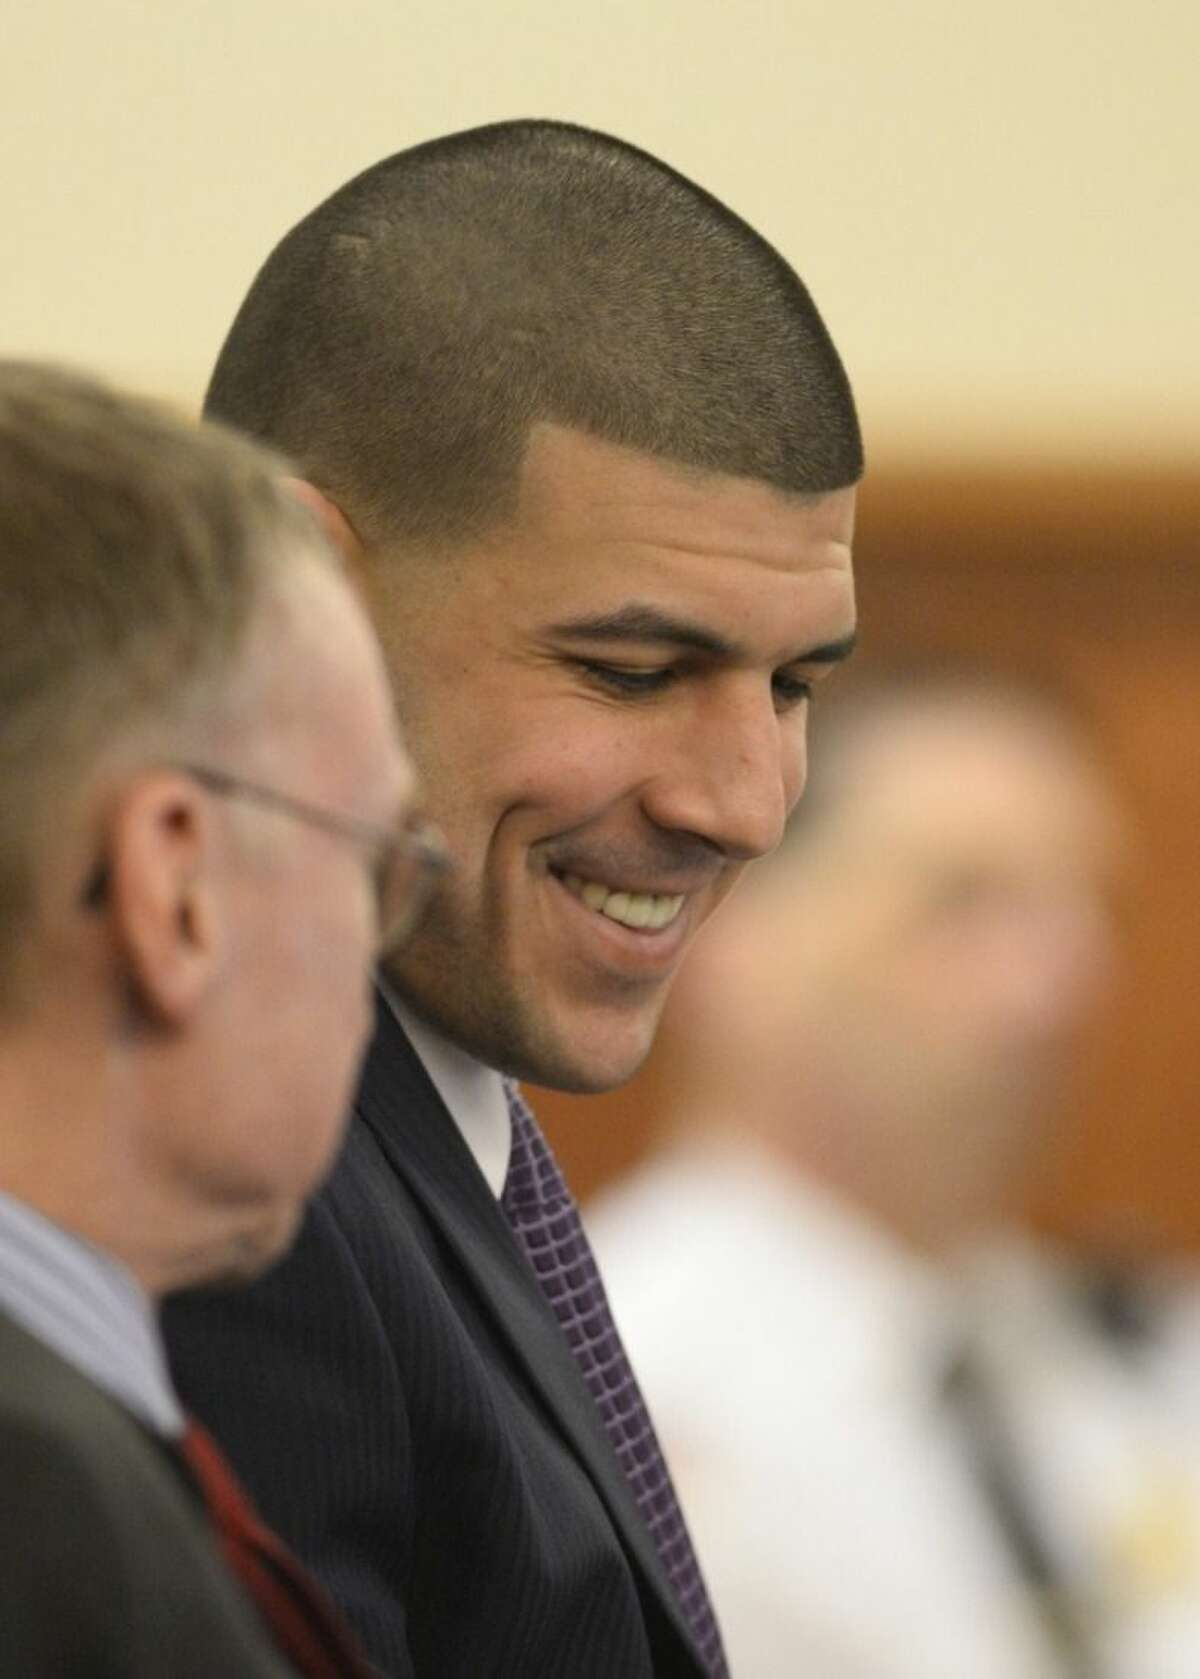 Former New England Patriots football player Aaron Hernandez smiles during his murder trial at the Bristol County Superior Court in Fall River, Mass., on Friday, April 3, 2015. Hernandez is charged with killing Odin Lloyd. (AP Photo/CJ Gunther, Pool)